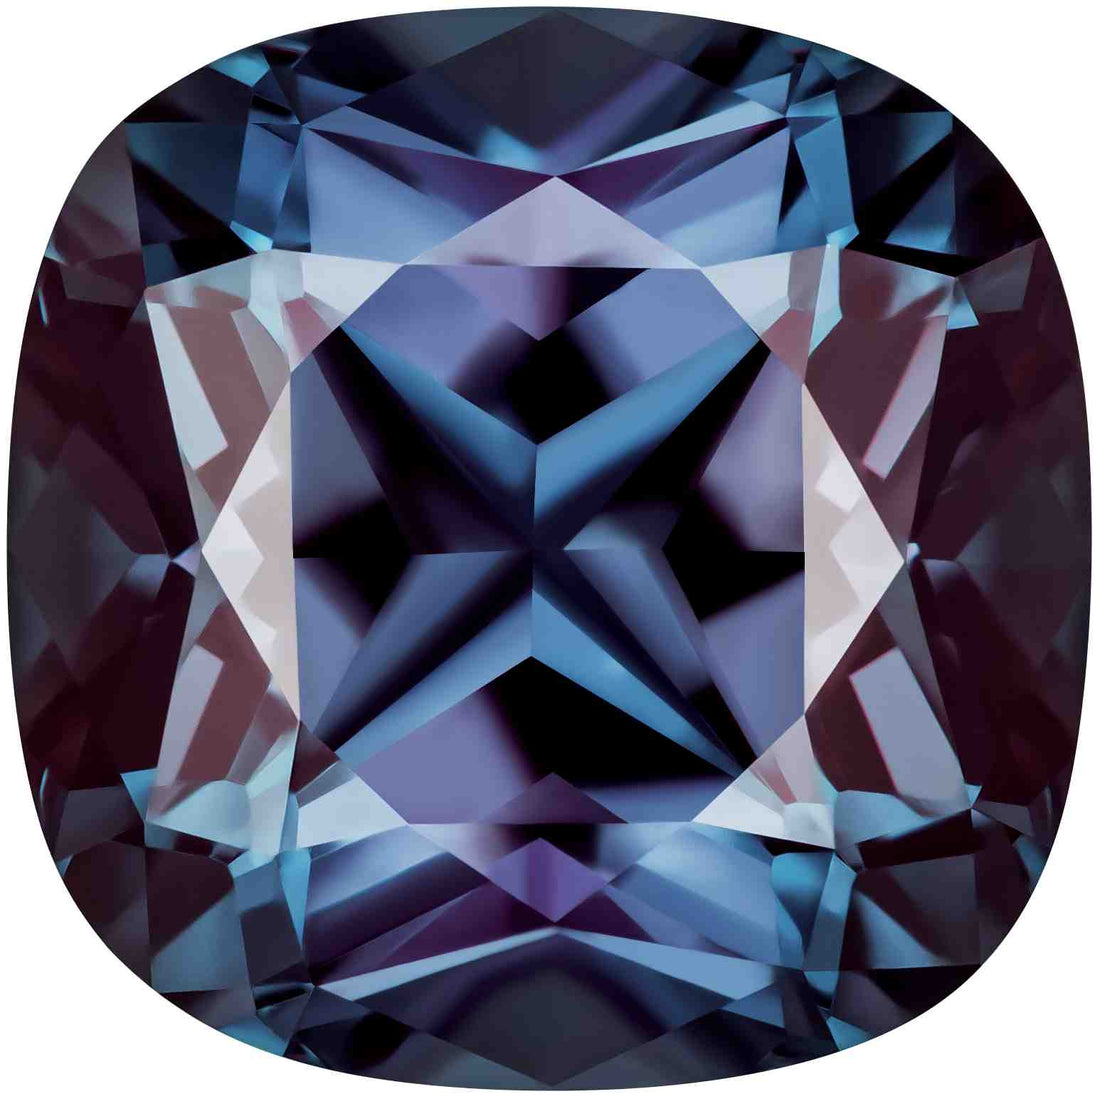 1.20 Carat Cushion Cut Alexandrite Lab Created Gemstone